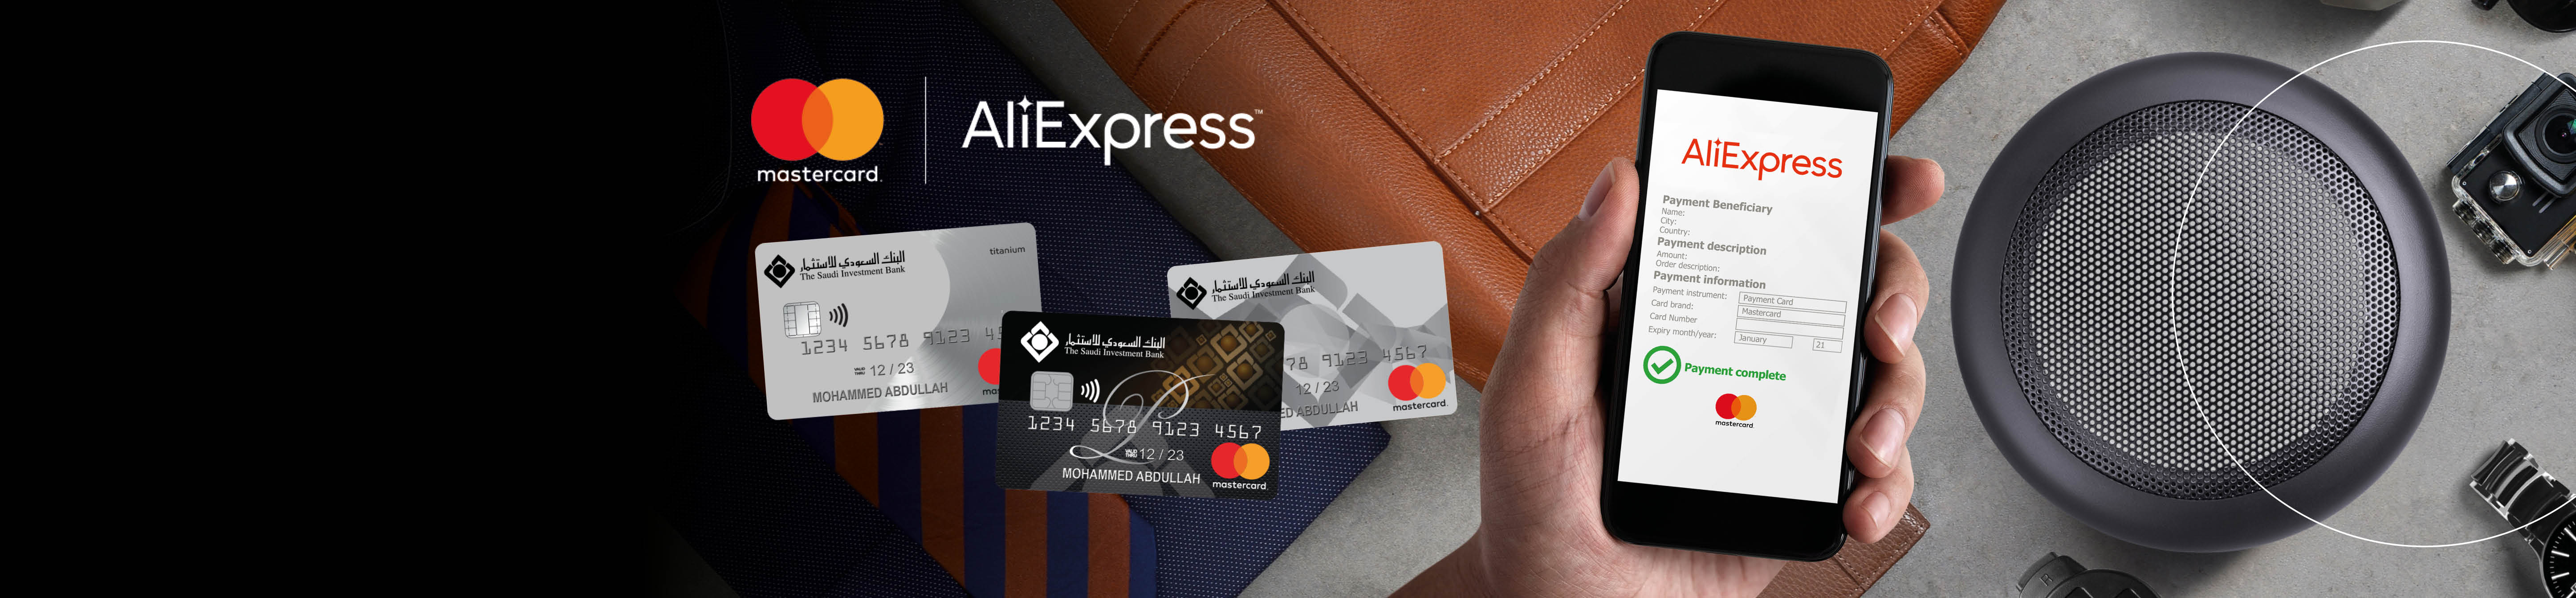 ALI EXPRESS & MASTERCARD OFFER